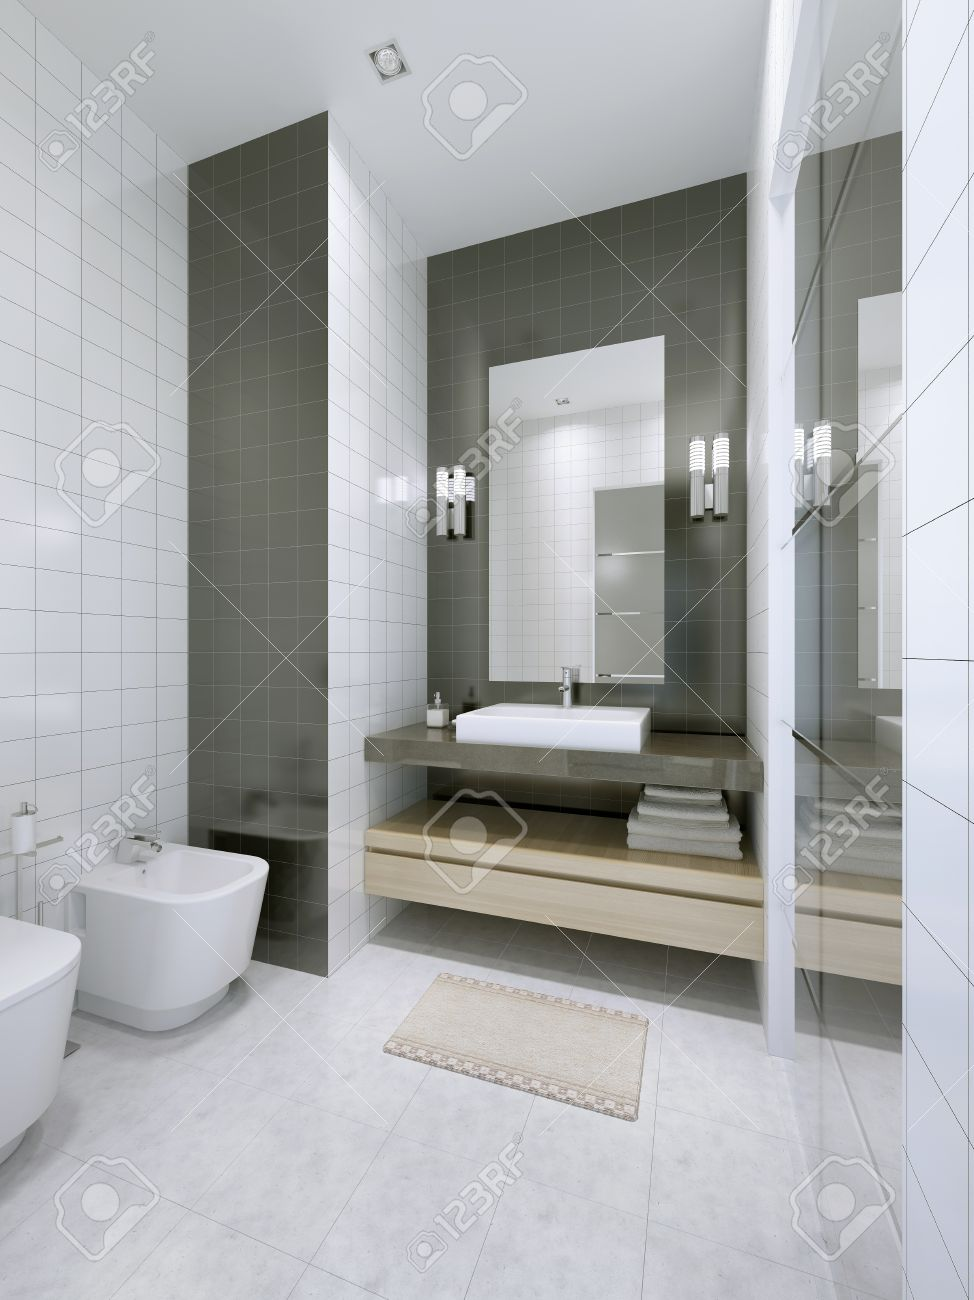 White Bathroom In Hotel Apartments. Marble Tile Flooring, Double ...